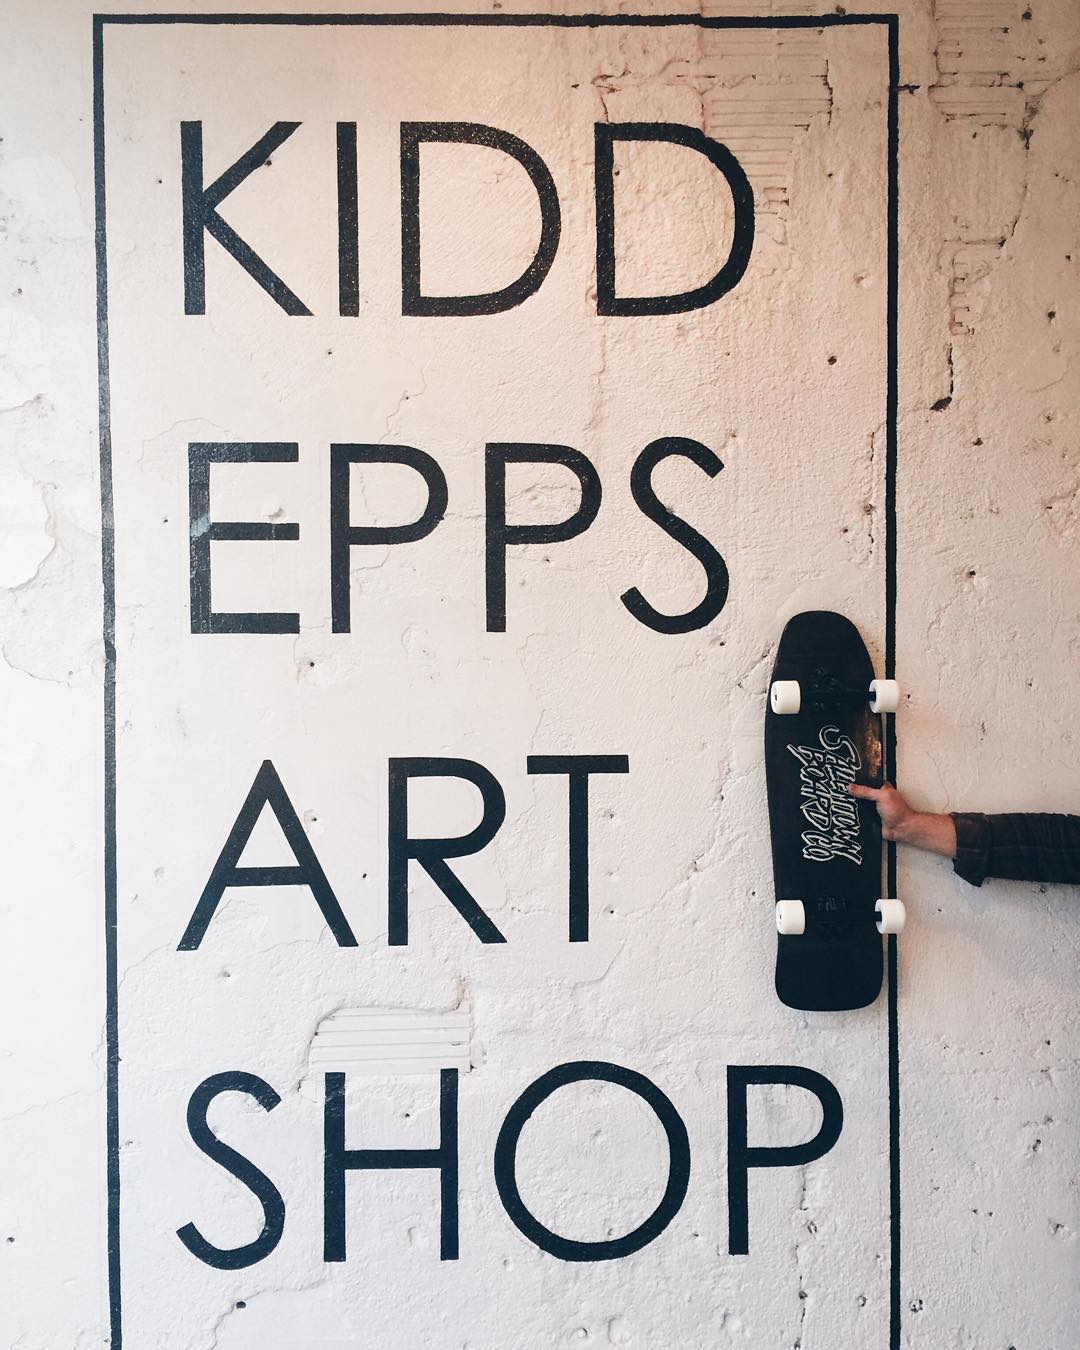 Tomorrow we are open along with the rest of the street. Go check out our friends at @kiddeppsartshop while you're out here. Good people, quality goods.